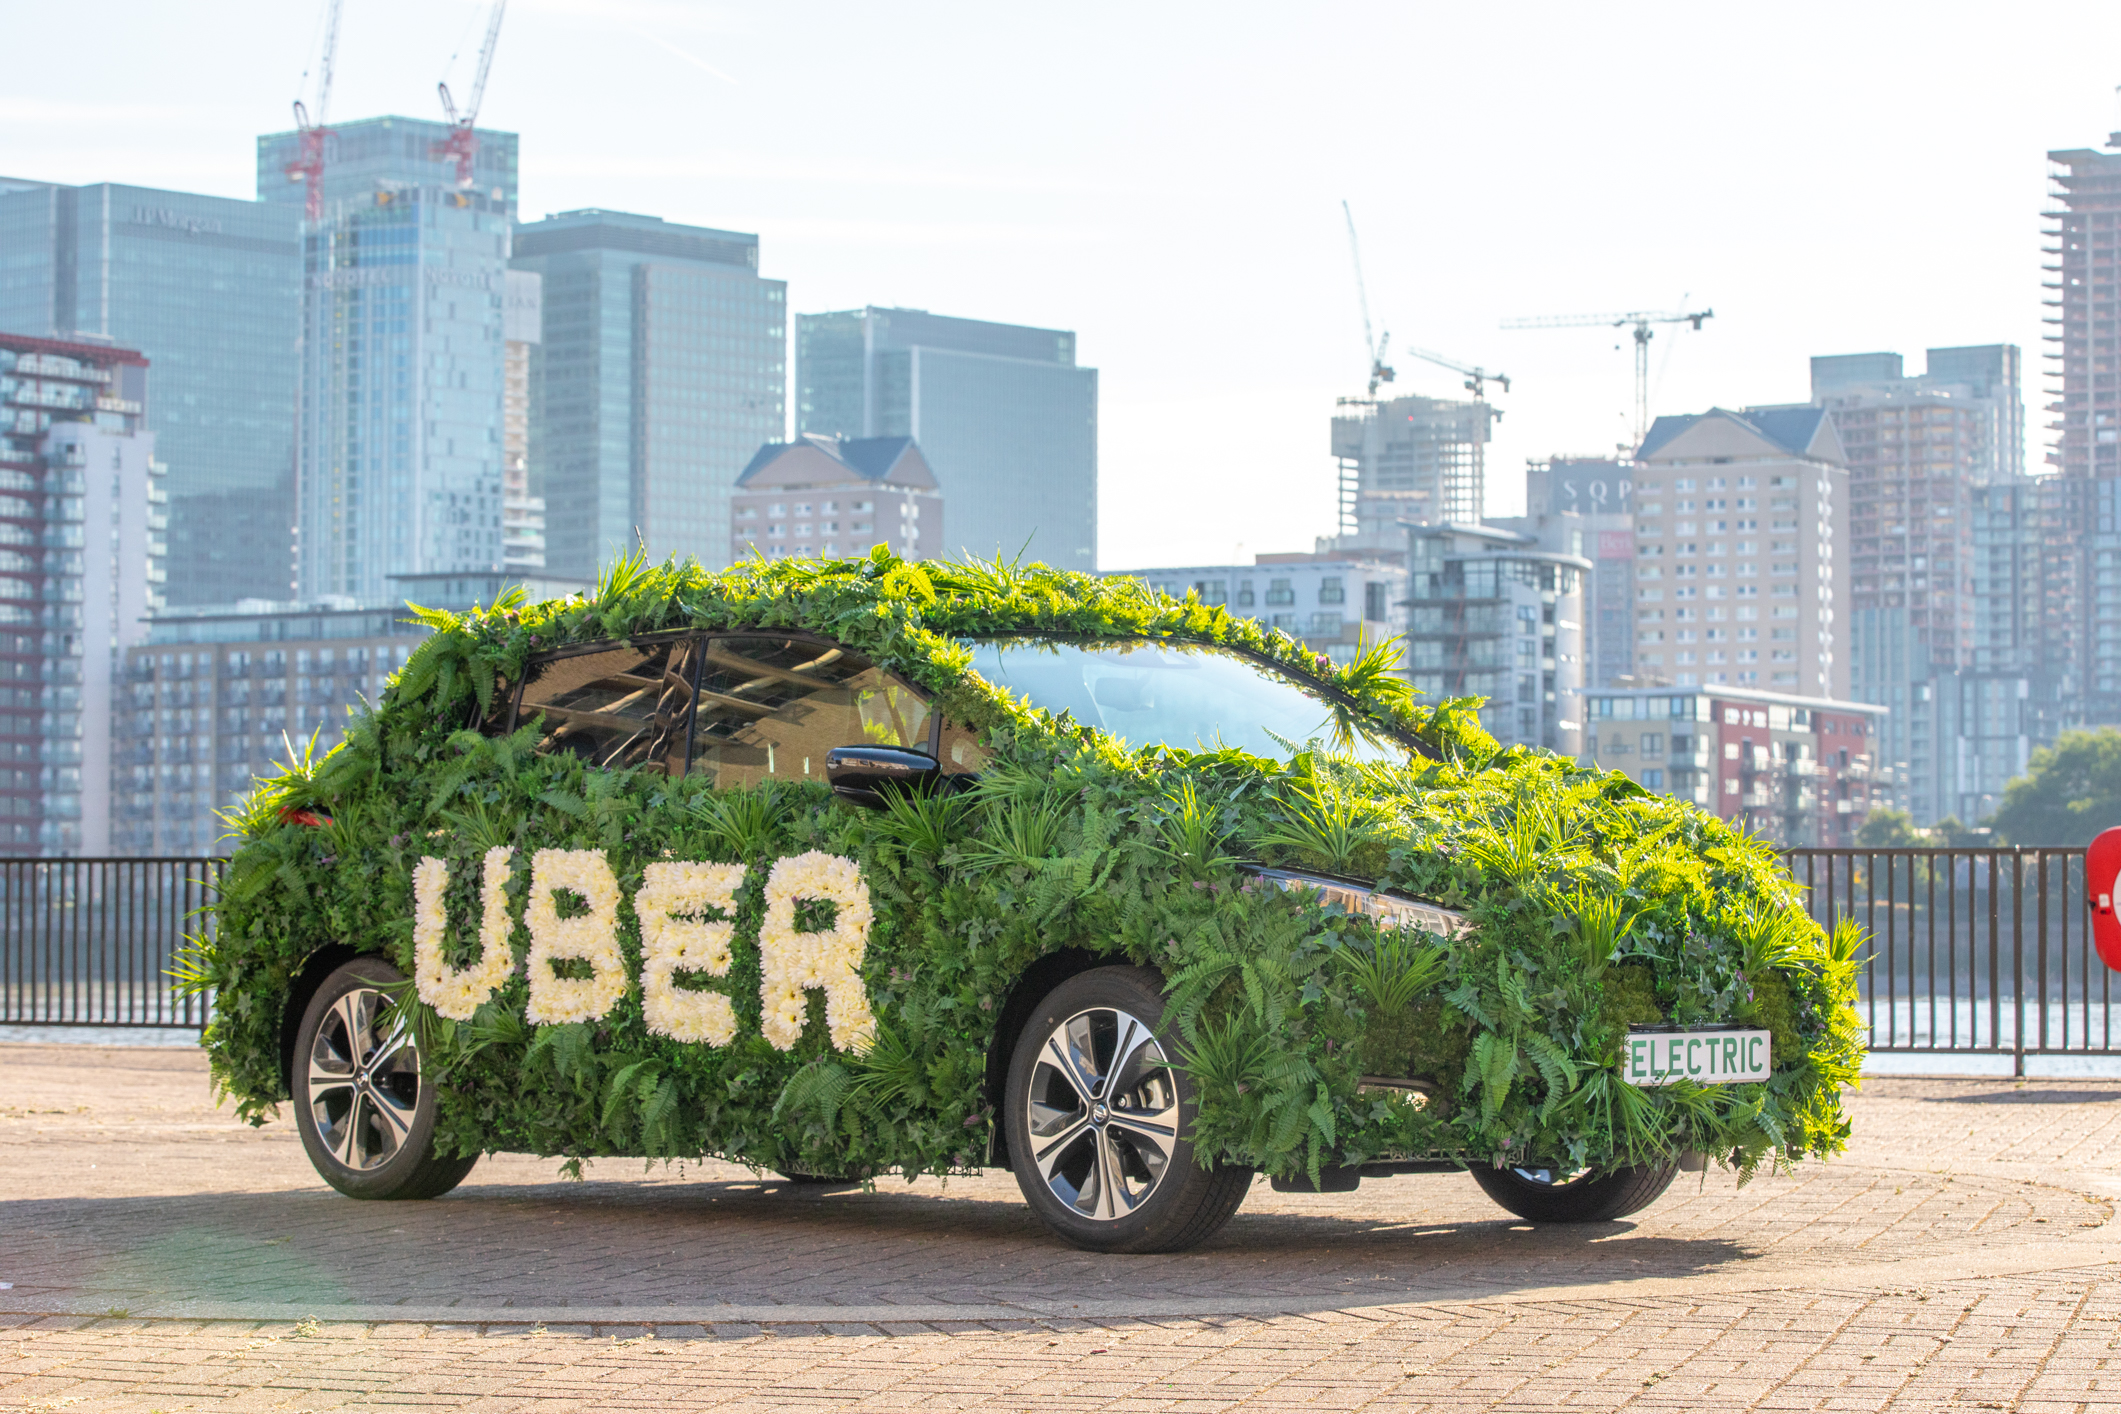 The Clean Air Plan—Helping London go electric | Uber Blog